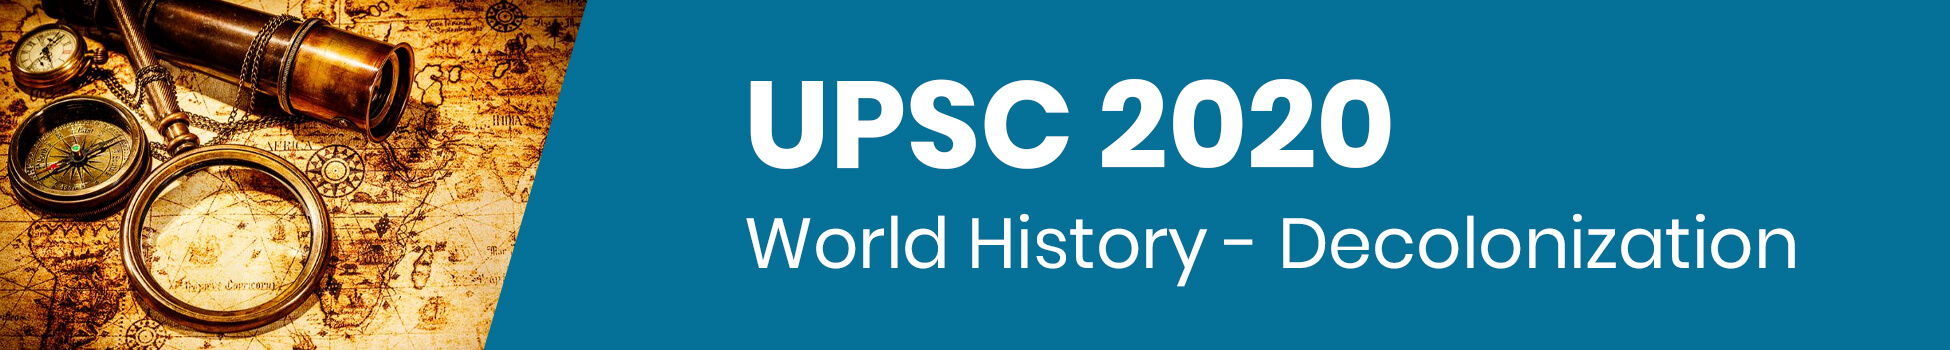 World History - Decolonization For UPSC 2020